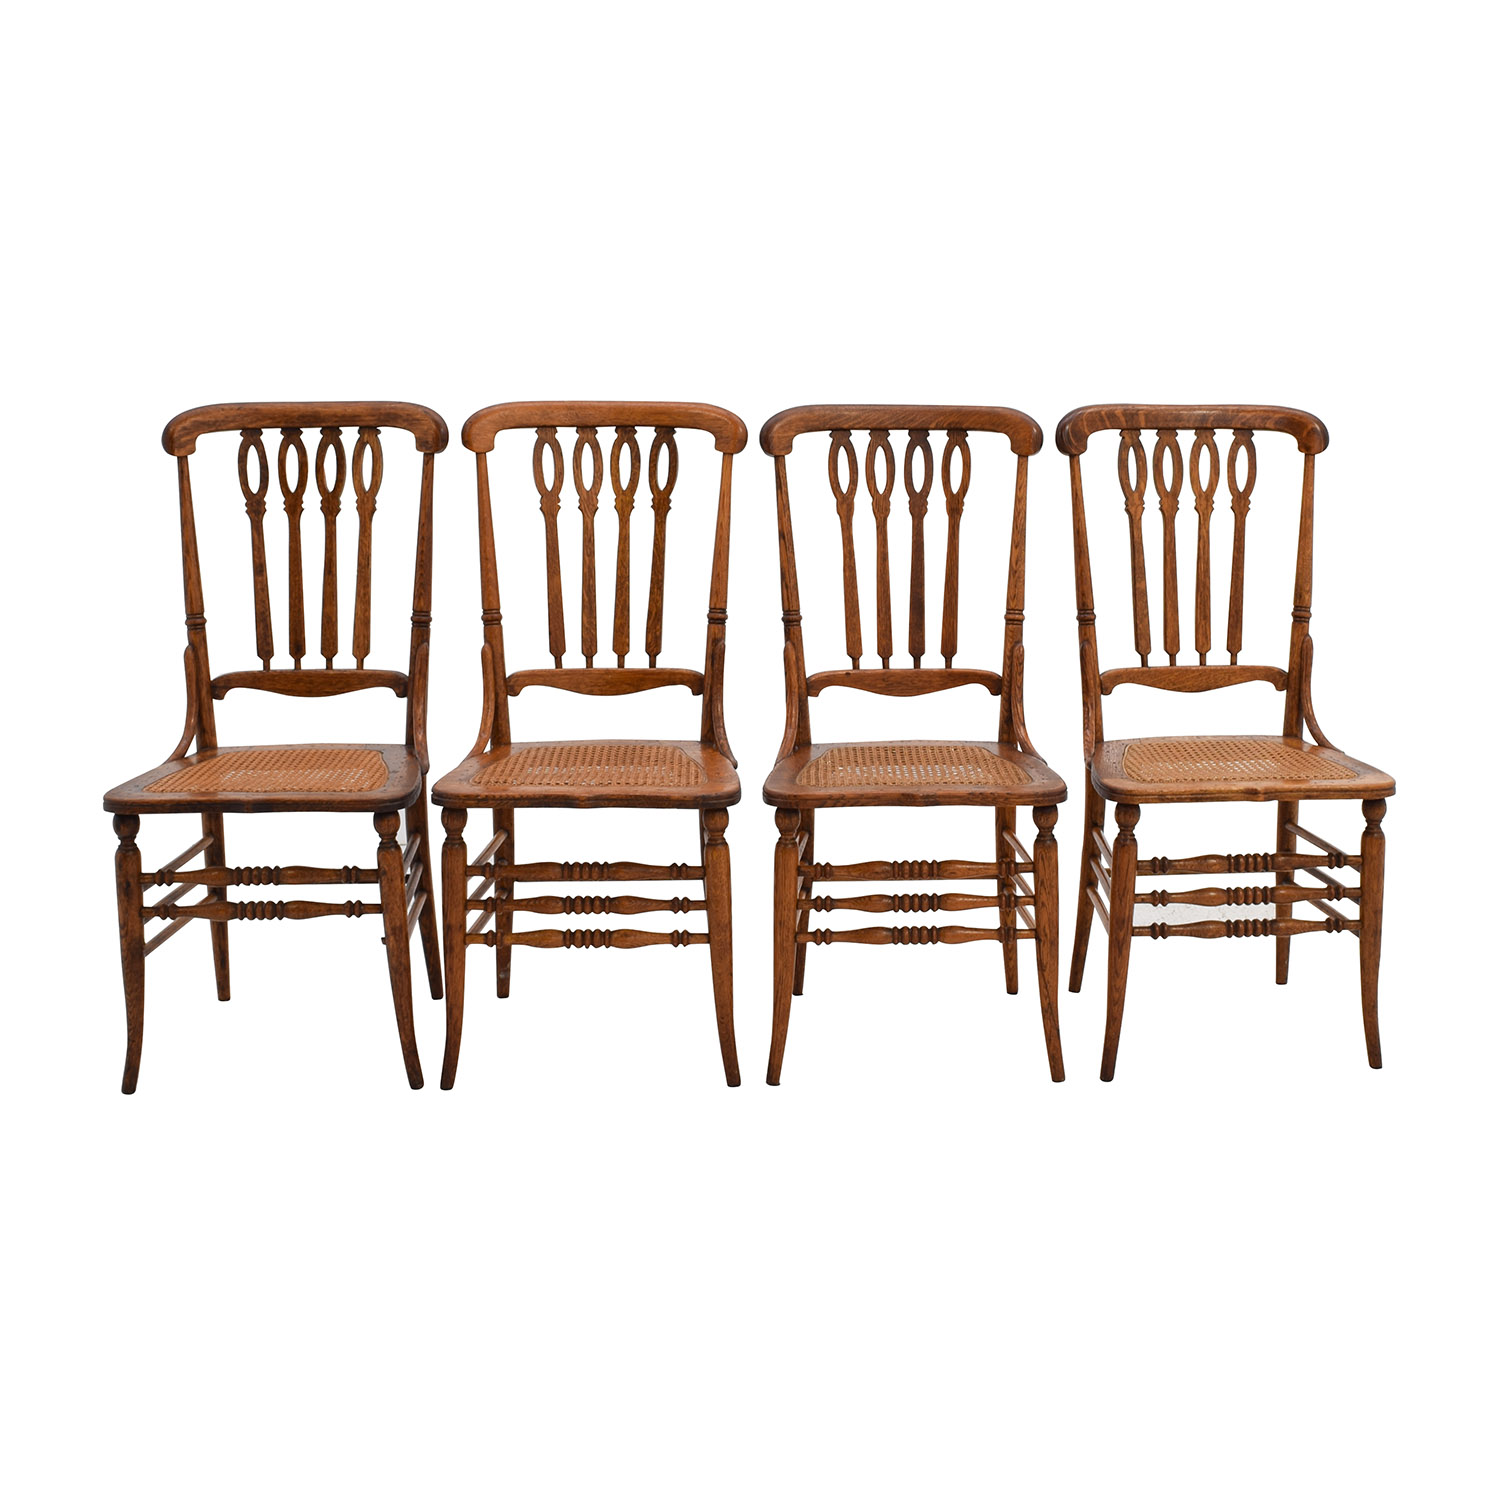 Antique Cane Weaved Wood Dining Chairs / Sofas